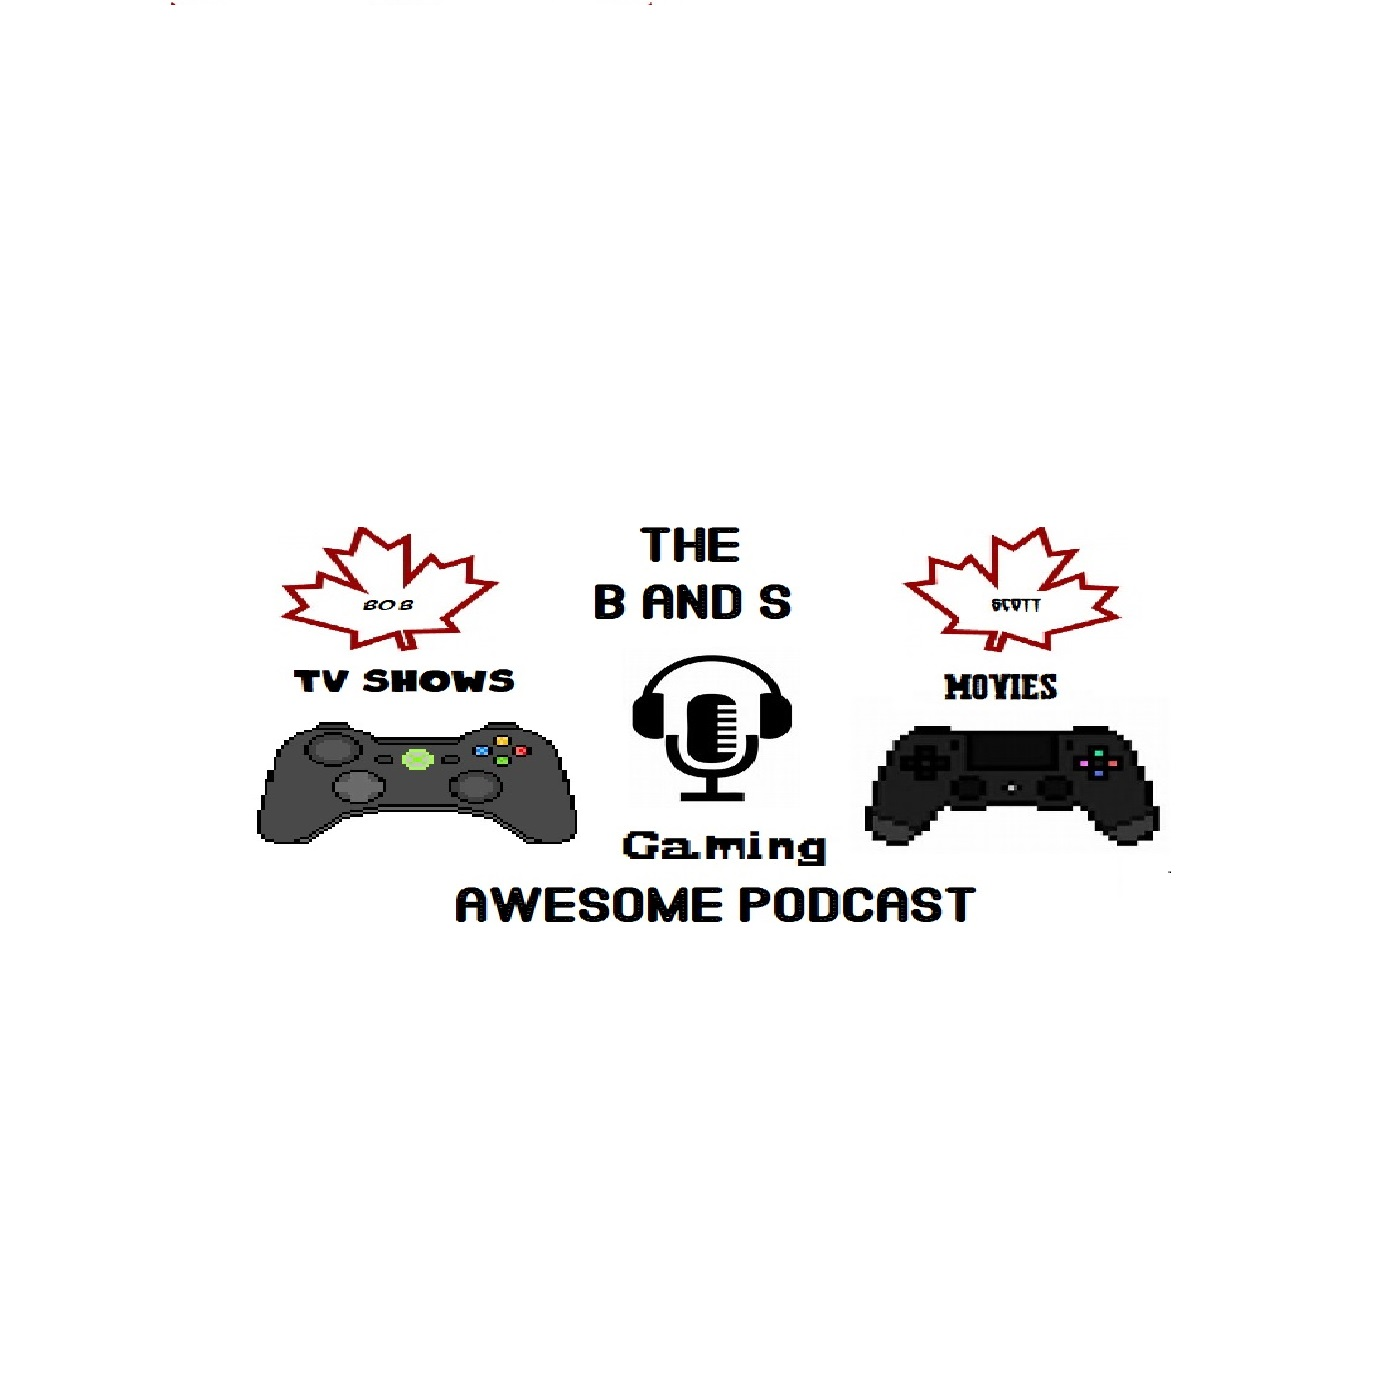 bandsawesomepodcast